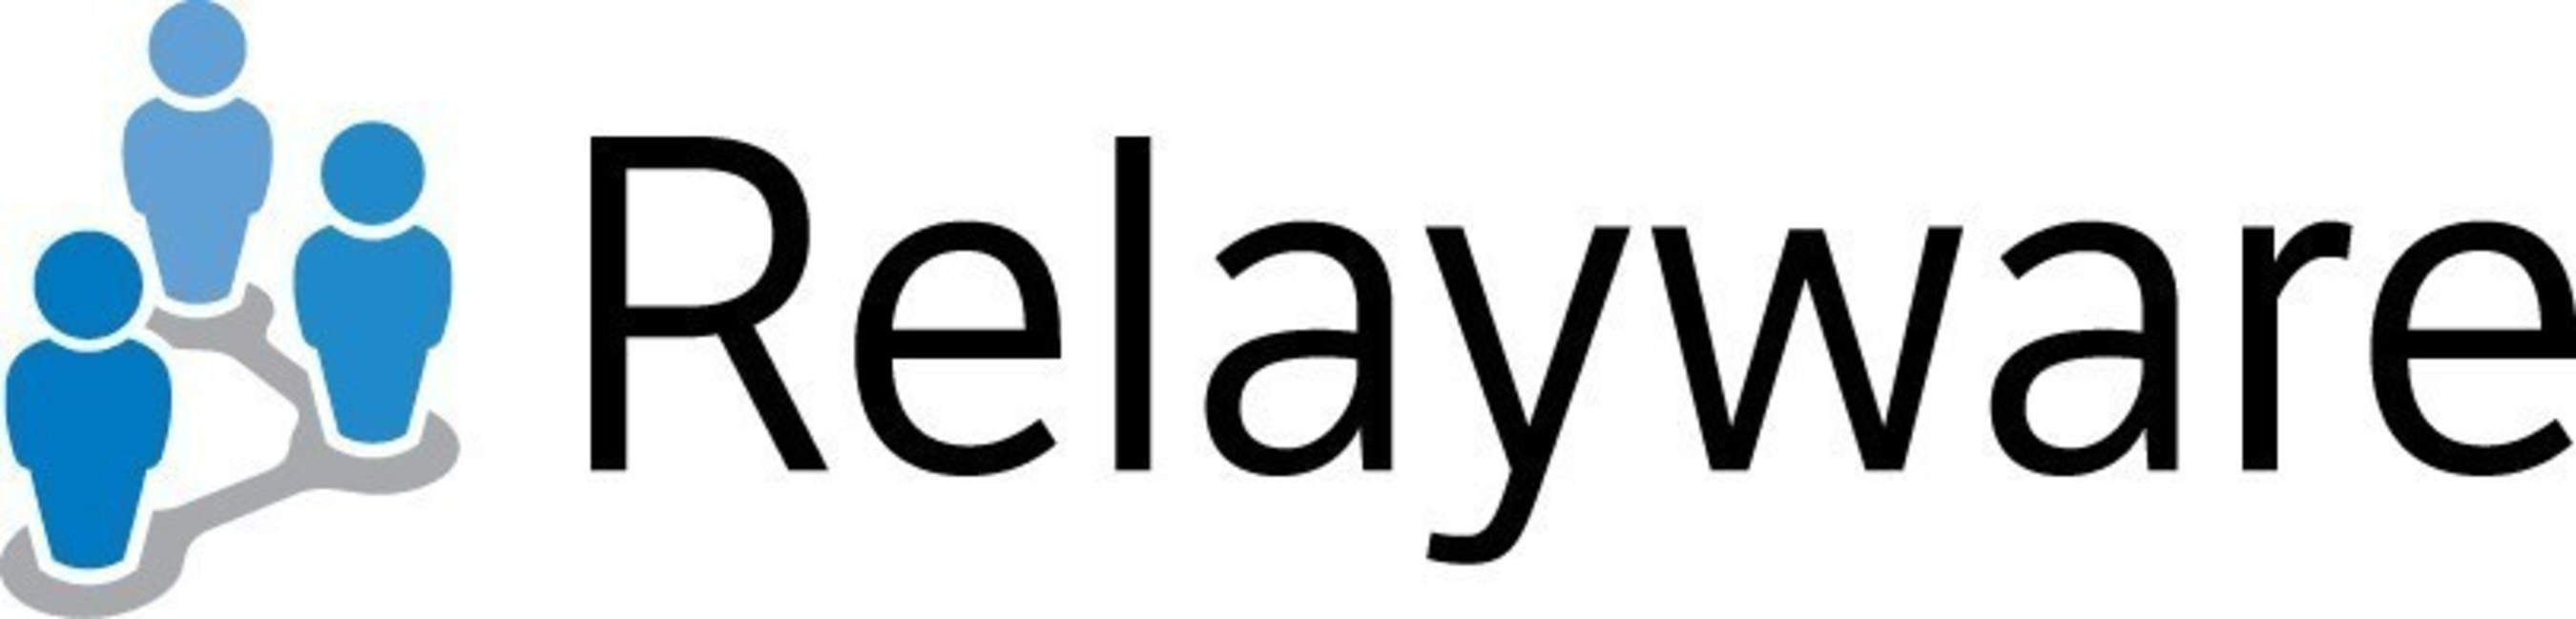 Relayware and ChannelAssist Announce Partnership and Integration